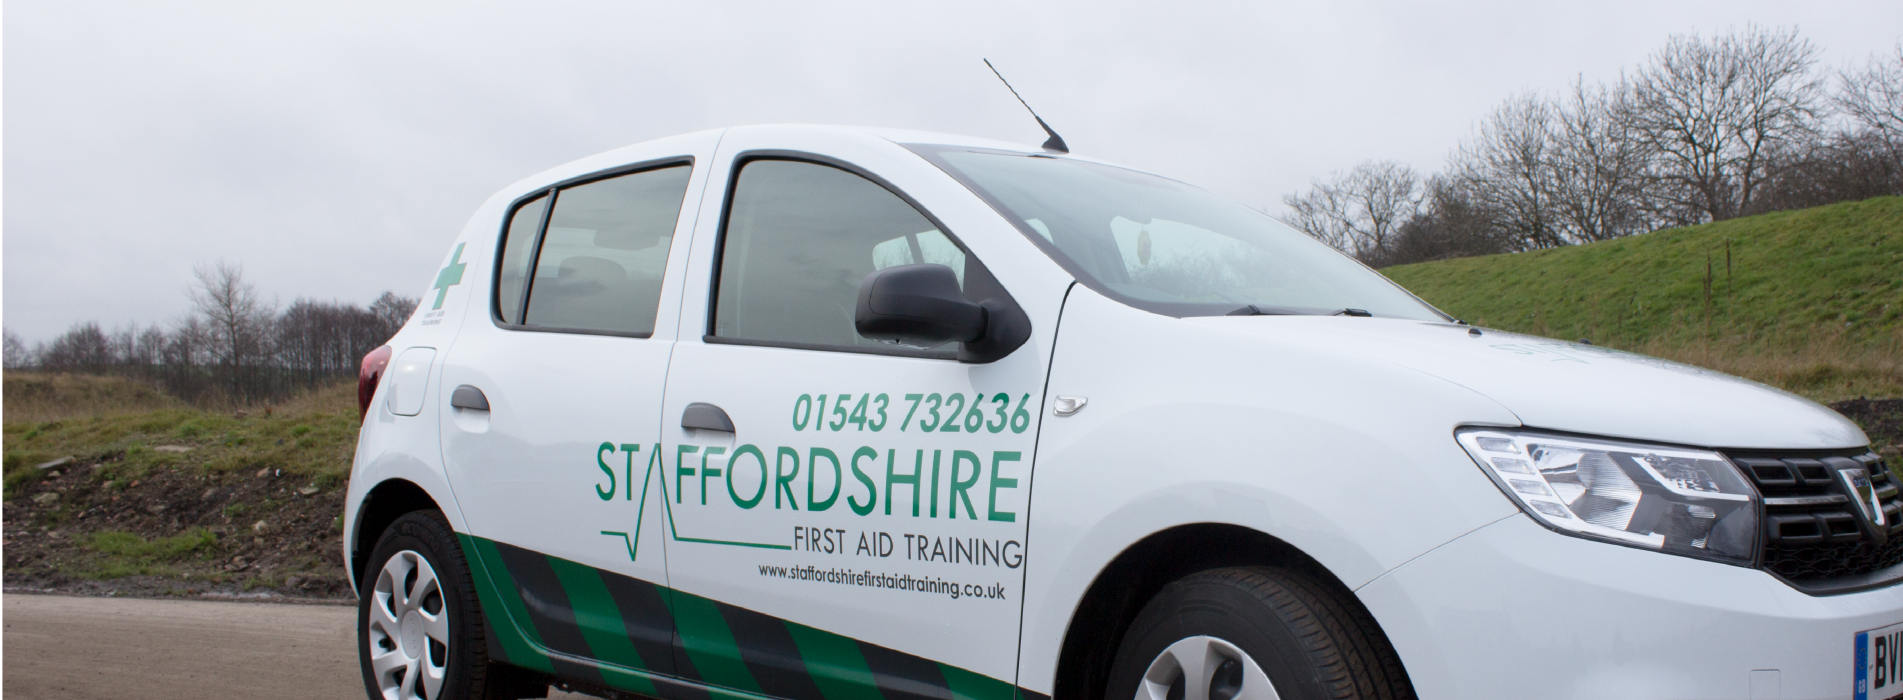 First Aid Training in Alford